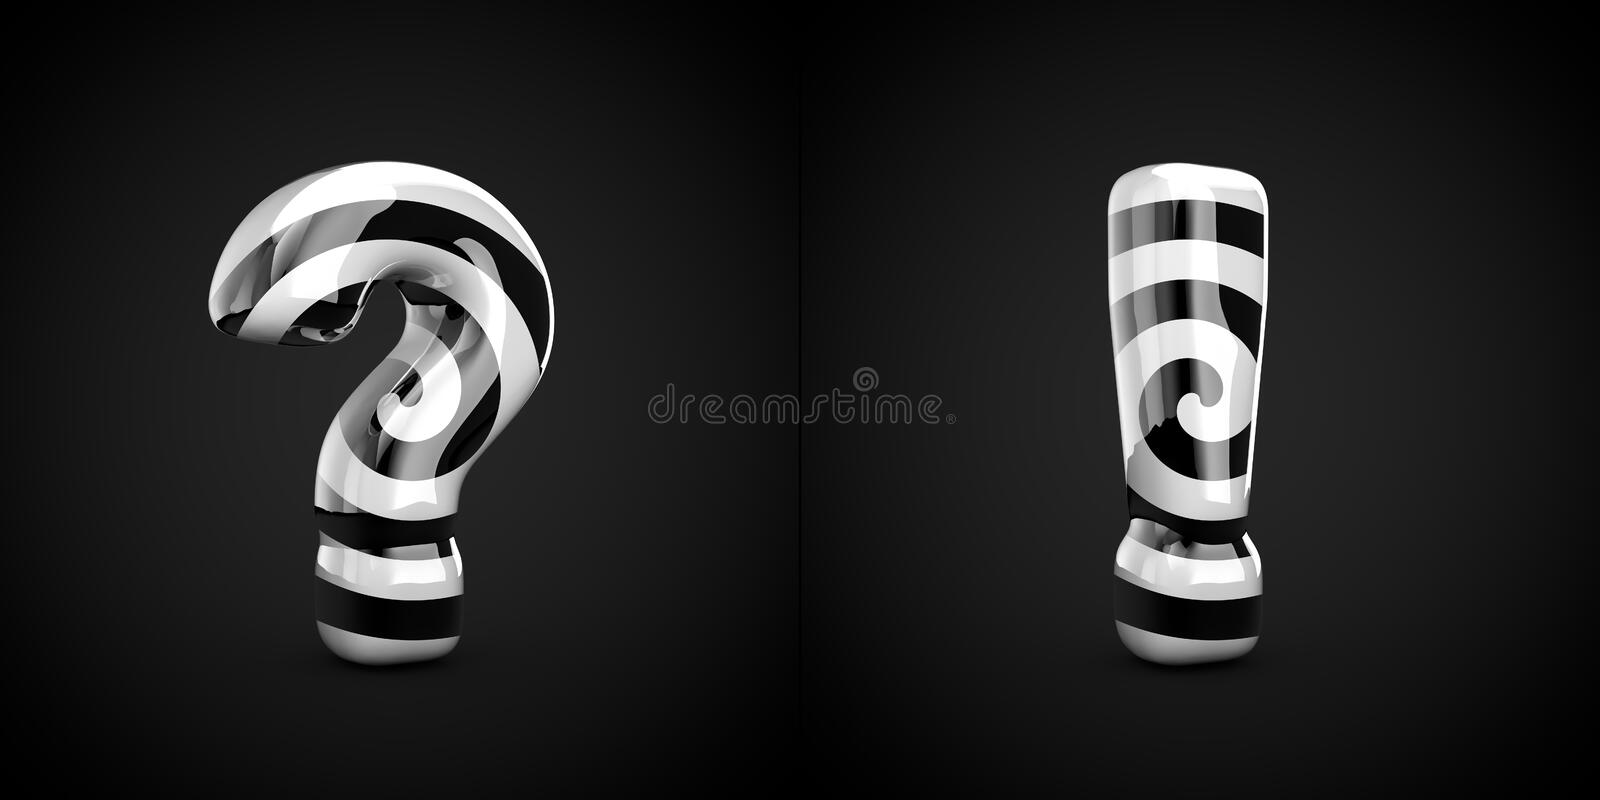 Black and white spiral pattern question and exclamation point symbols isolated on black background royalty free illustration